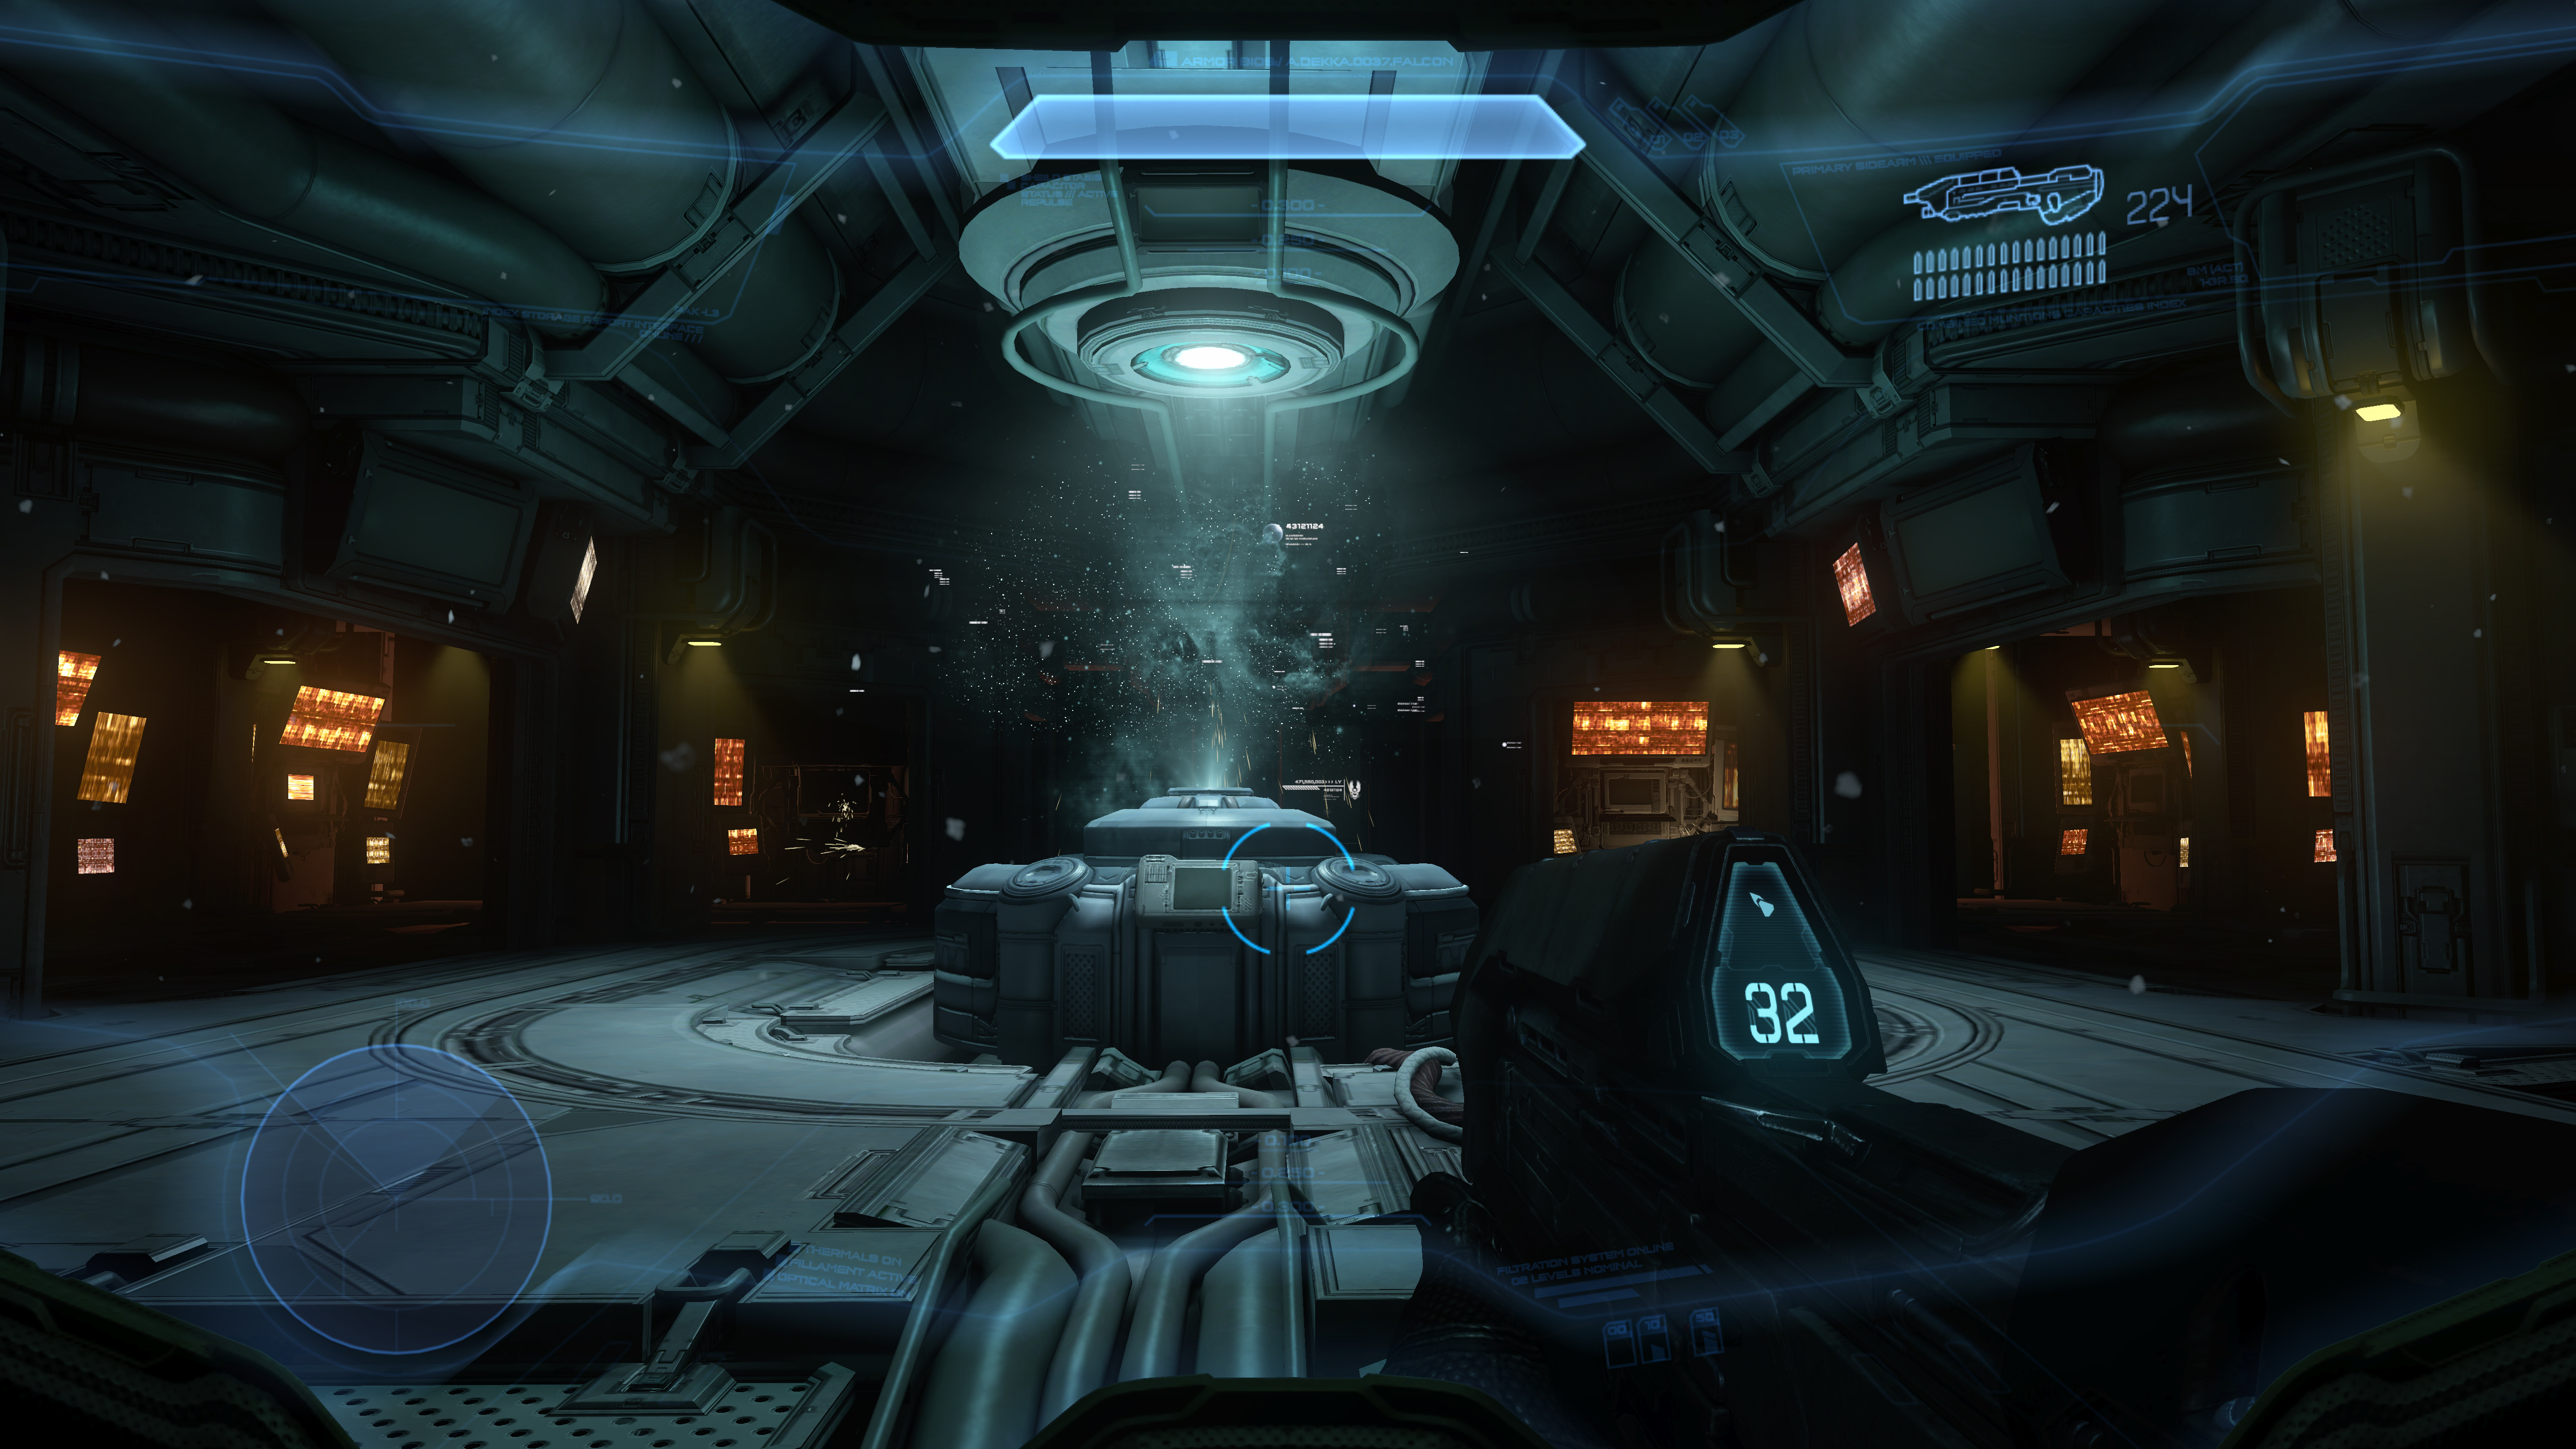 Halo 4 review 360 the average gamer - Halo 4 photos ...